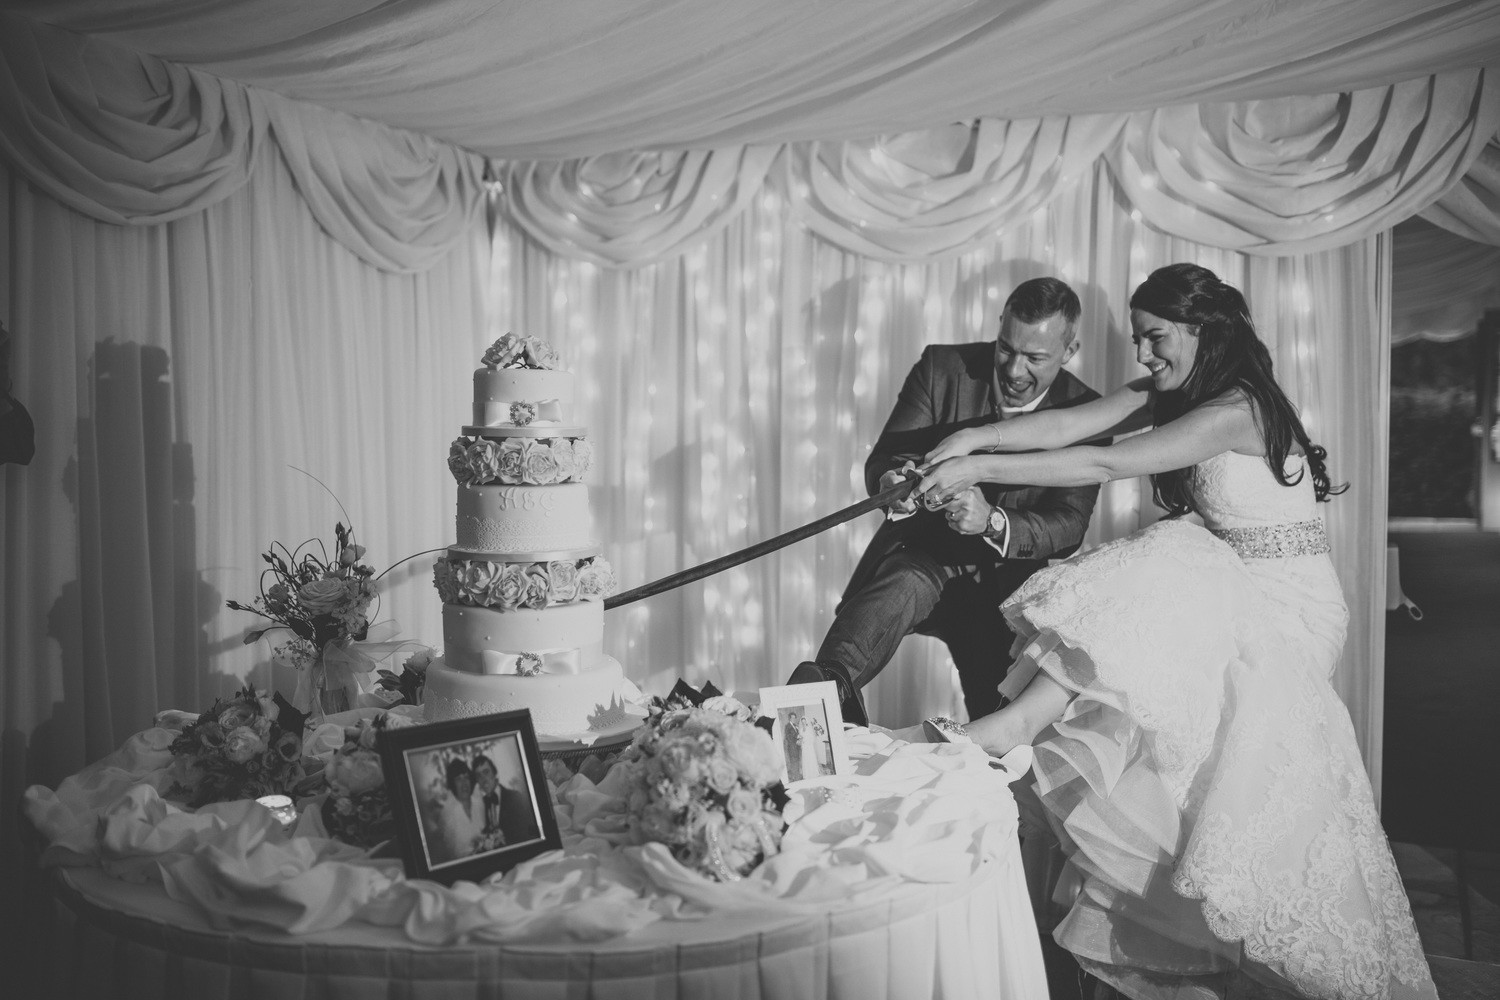 Bridebook.co.uk- bride and groom having fun cutting the cake with a ceremonial sword